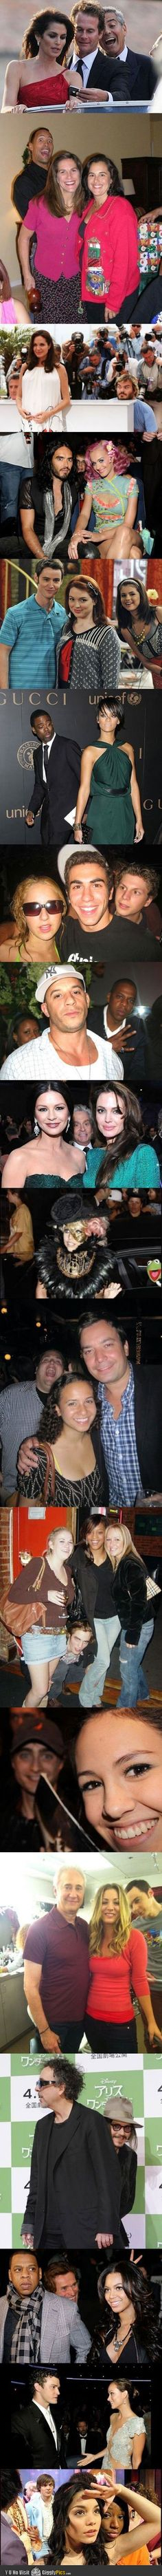 Celebrity photo-bombs. I cracked up! haha